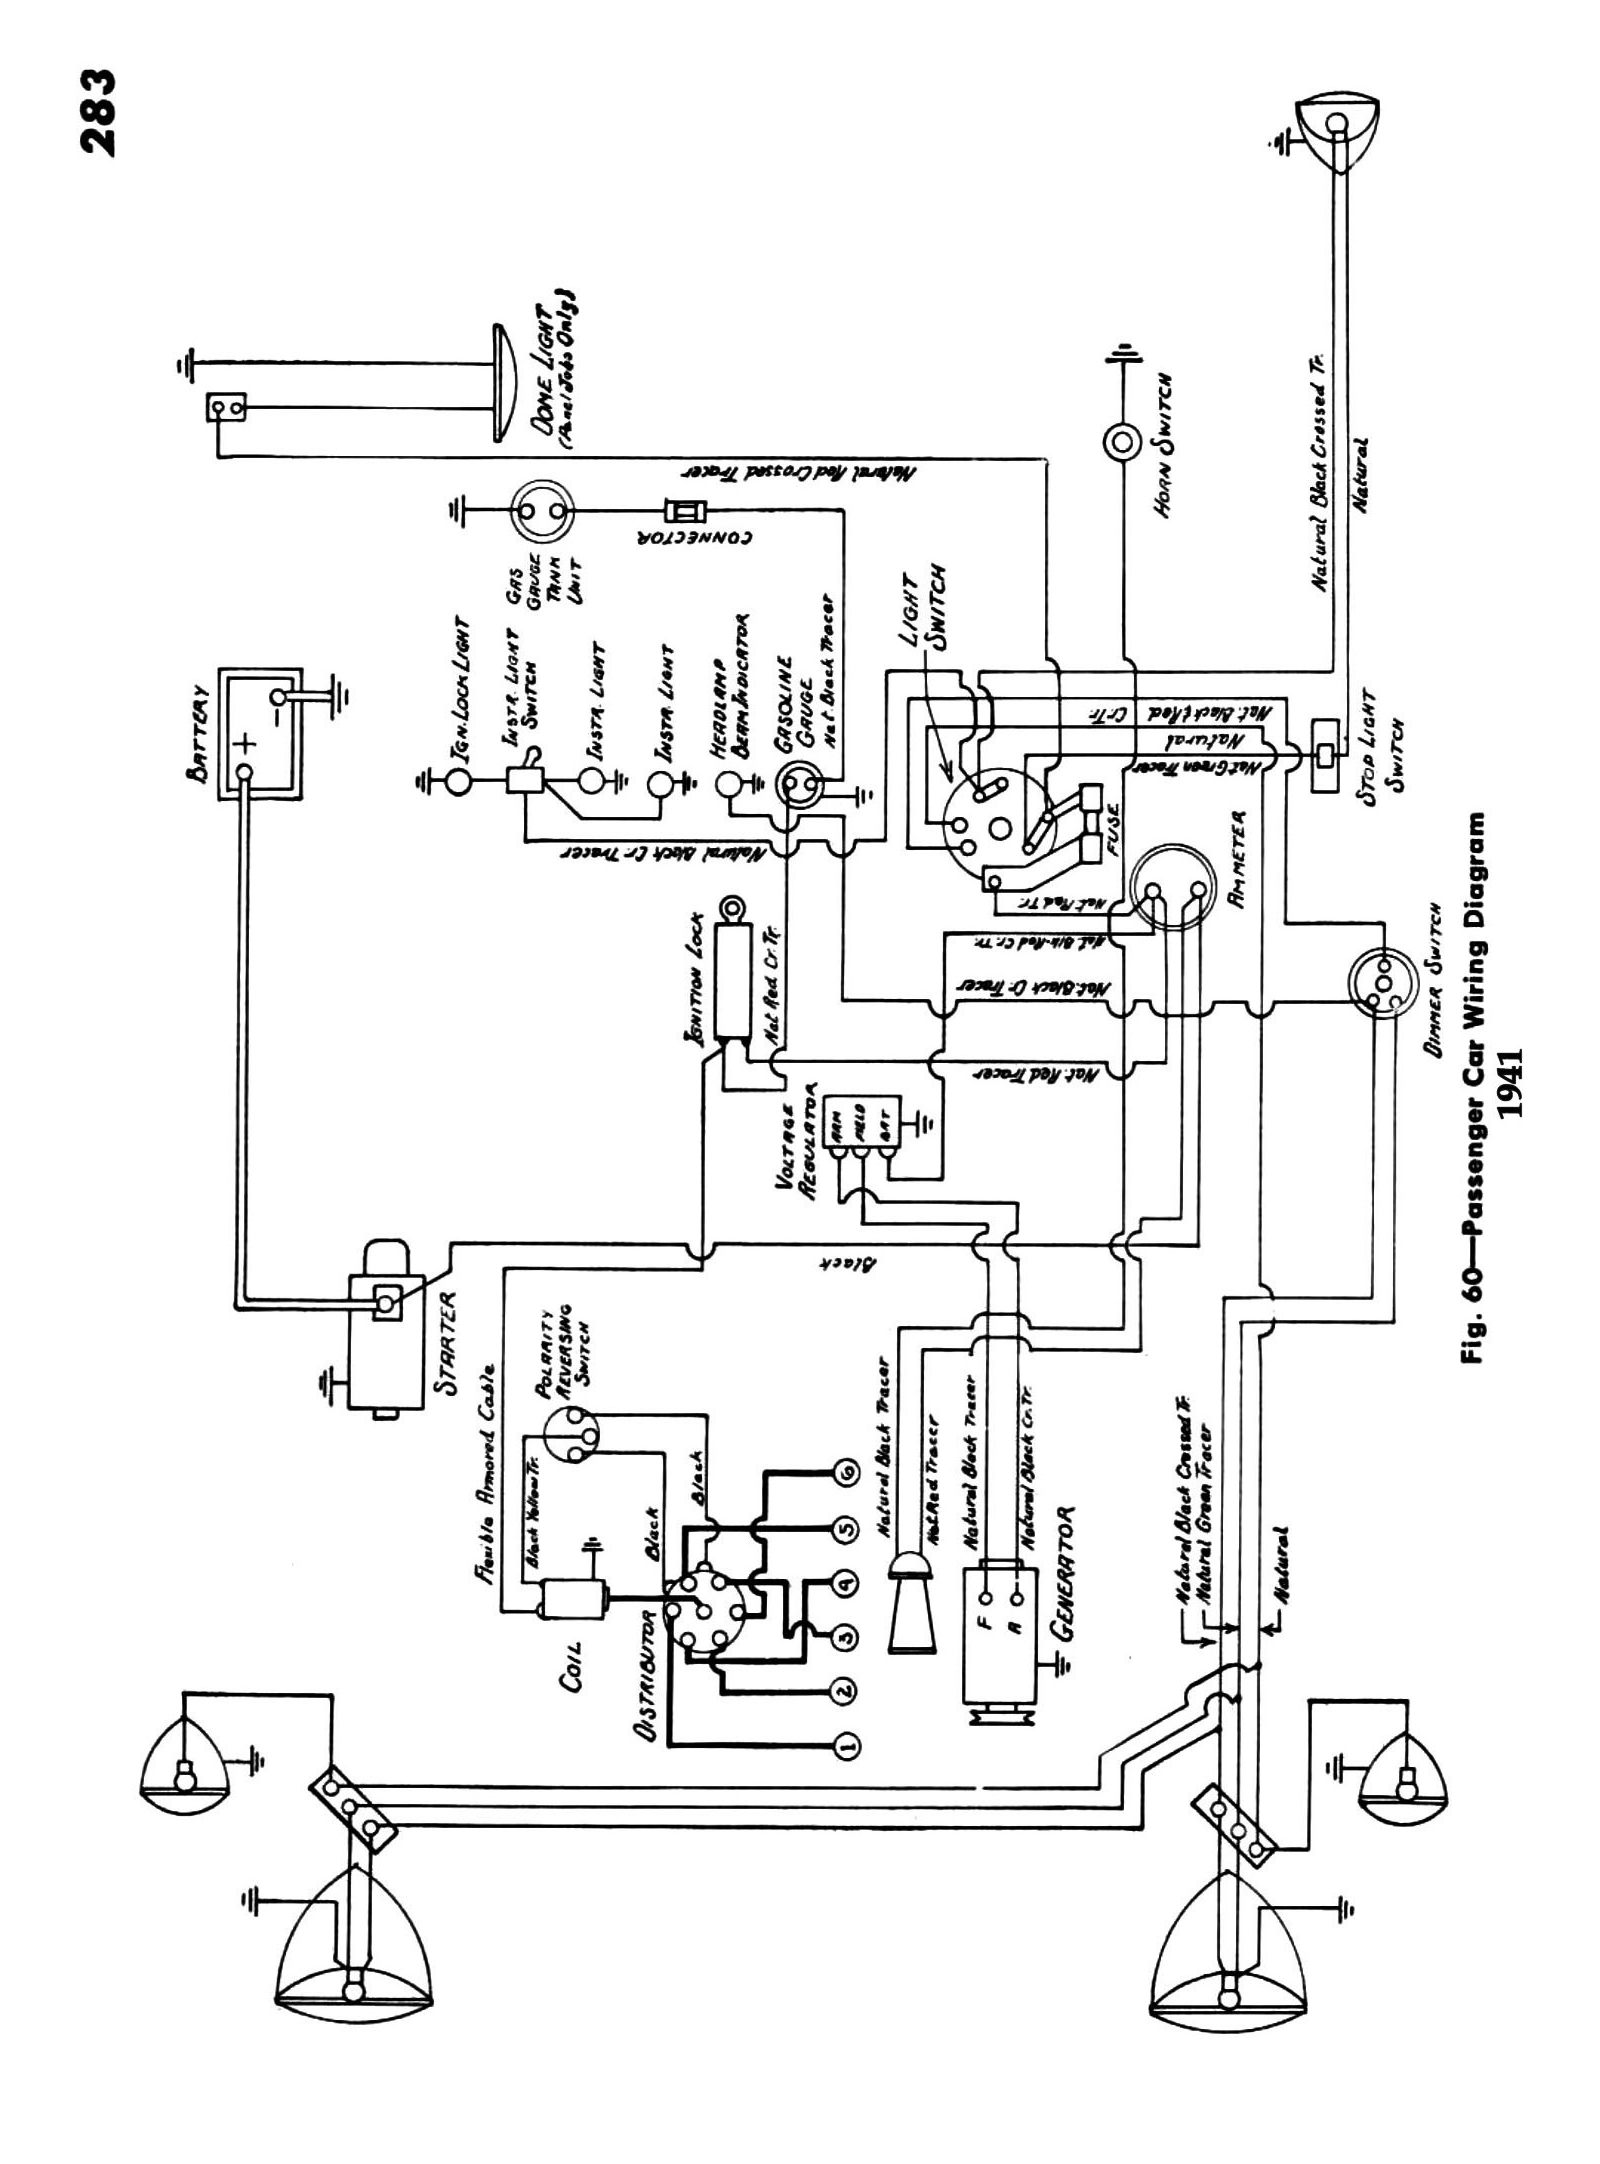 41csm283 chevy wiring diagrams chevy truck wiring diagram at fashall.co